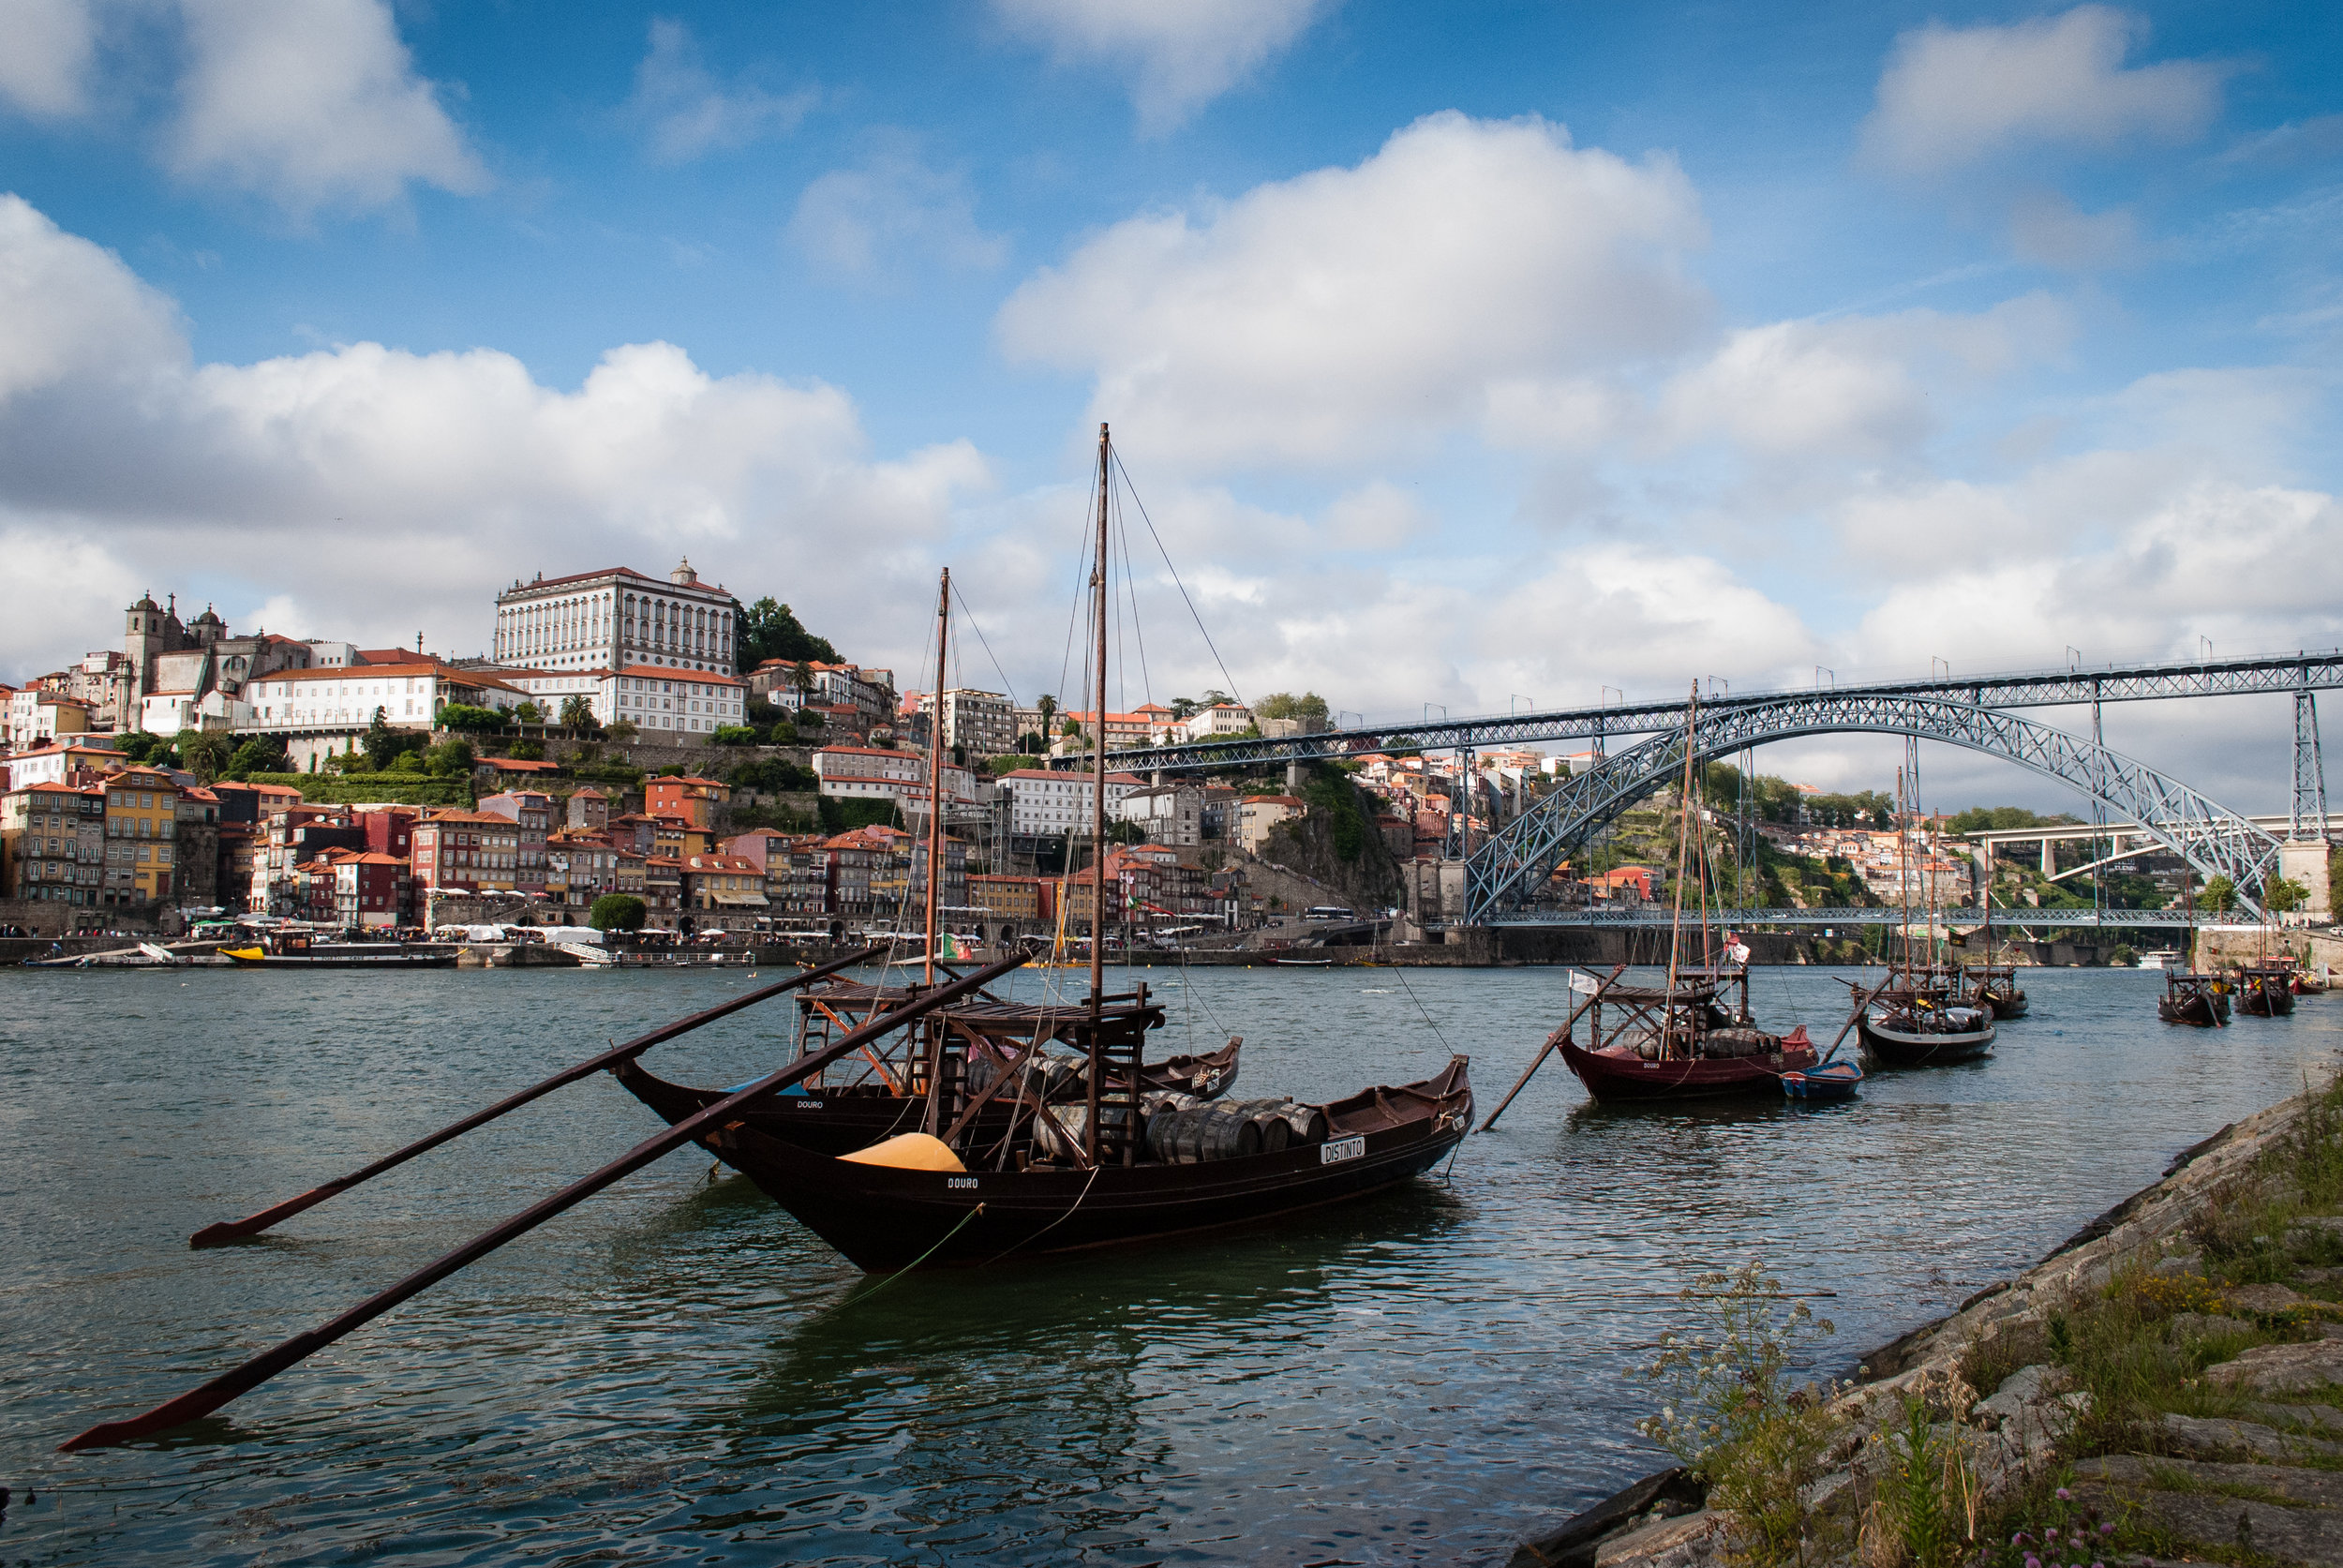 Rabelo is a traditional Portuguese cargo boat originally used to transport the barrels of Porto wine from the wine cellars in Vila Nova de Gaia to Porto. Nowadays, the boats are used as sightseeing cruises that sail down the Douro River and offer a different perspective of Porto. Porto, Portugal